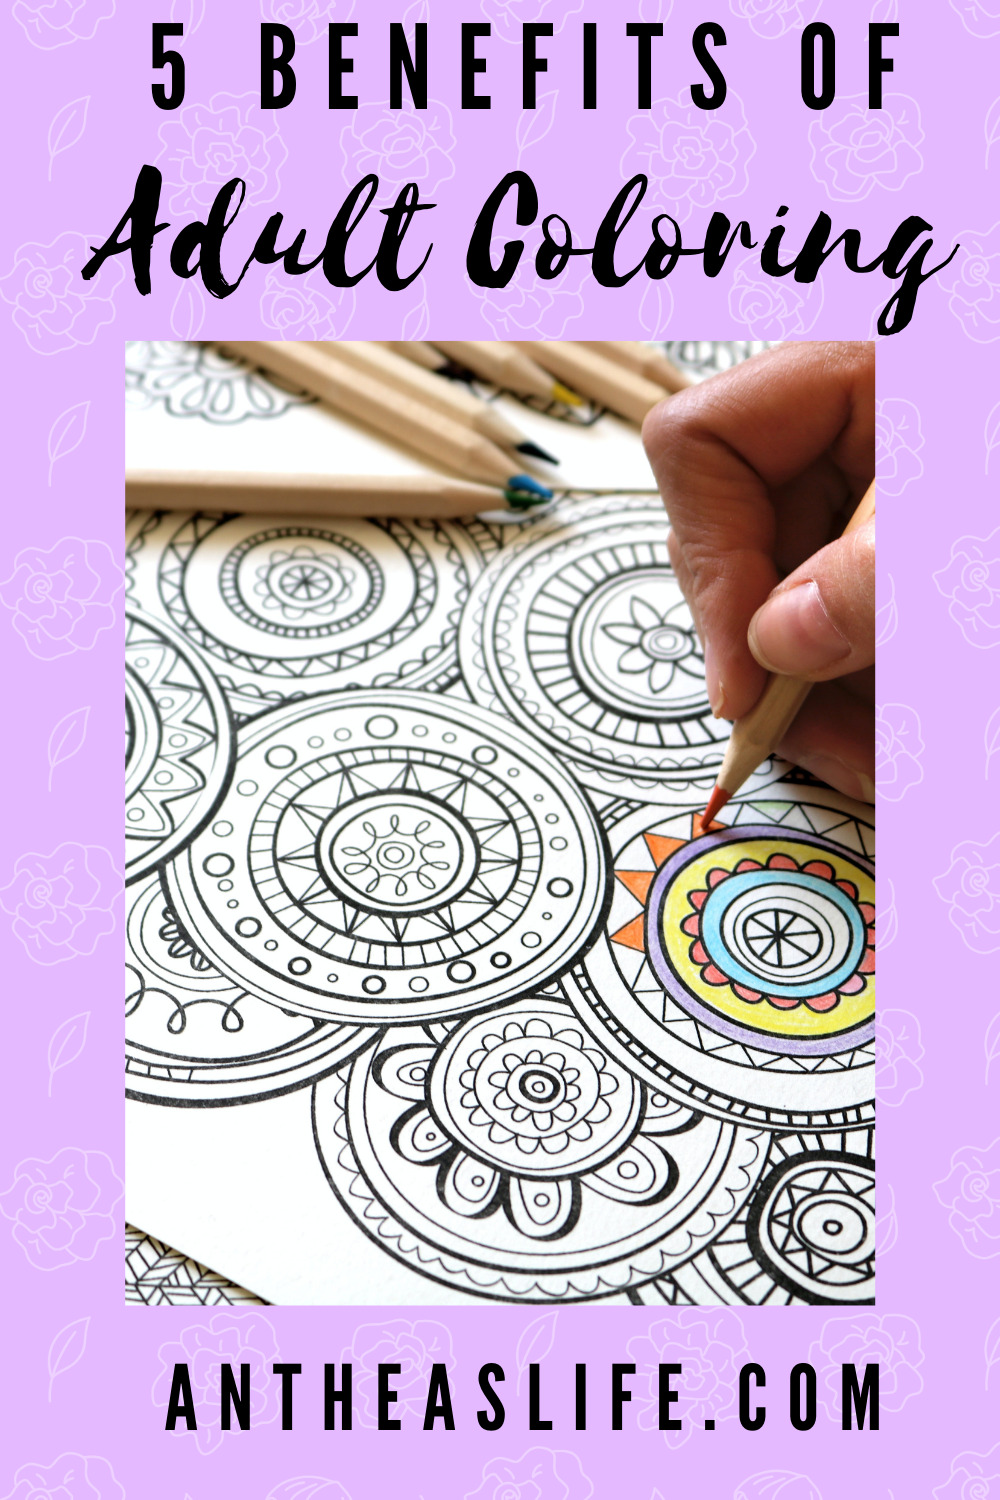 benefits-of-adult-coloring